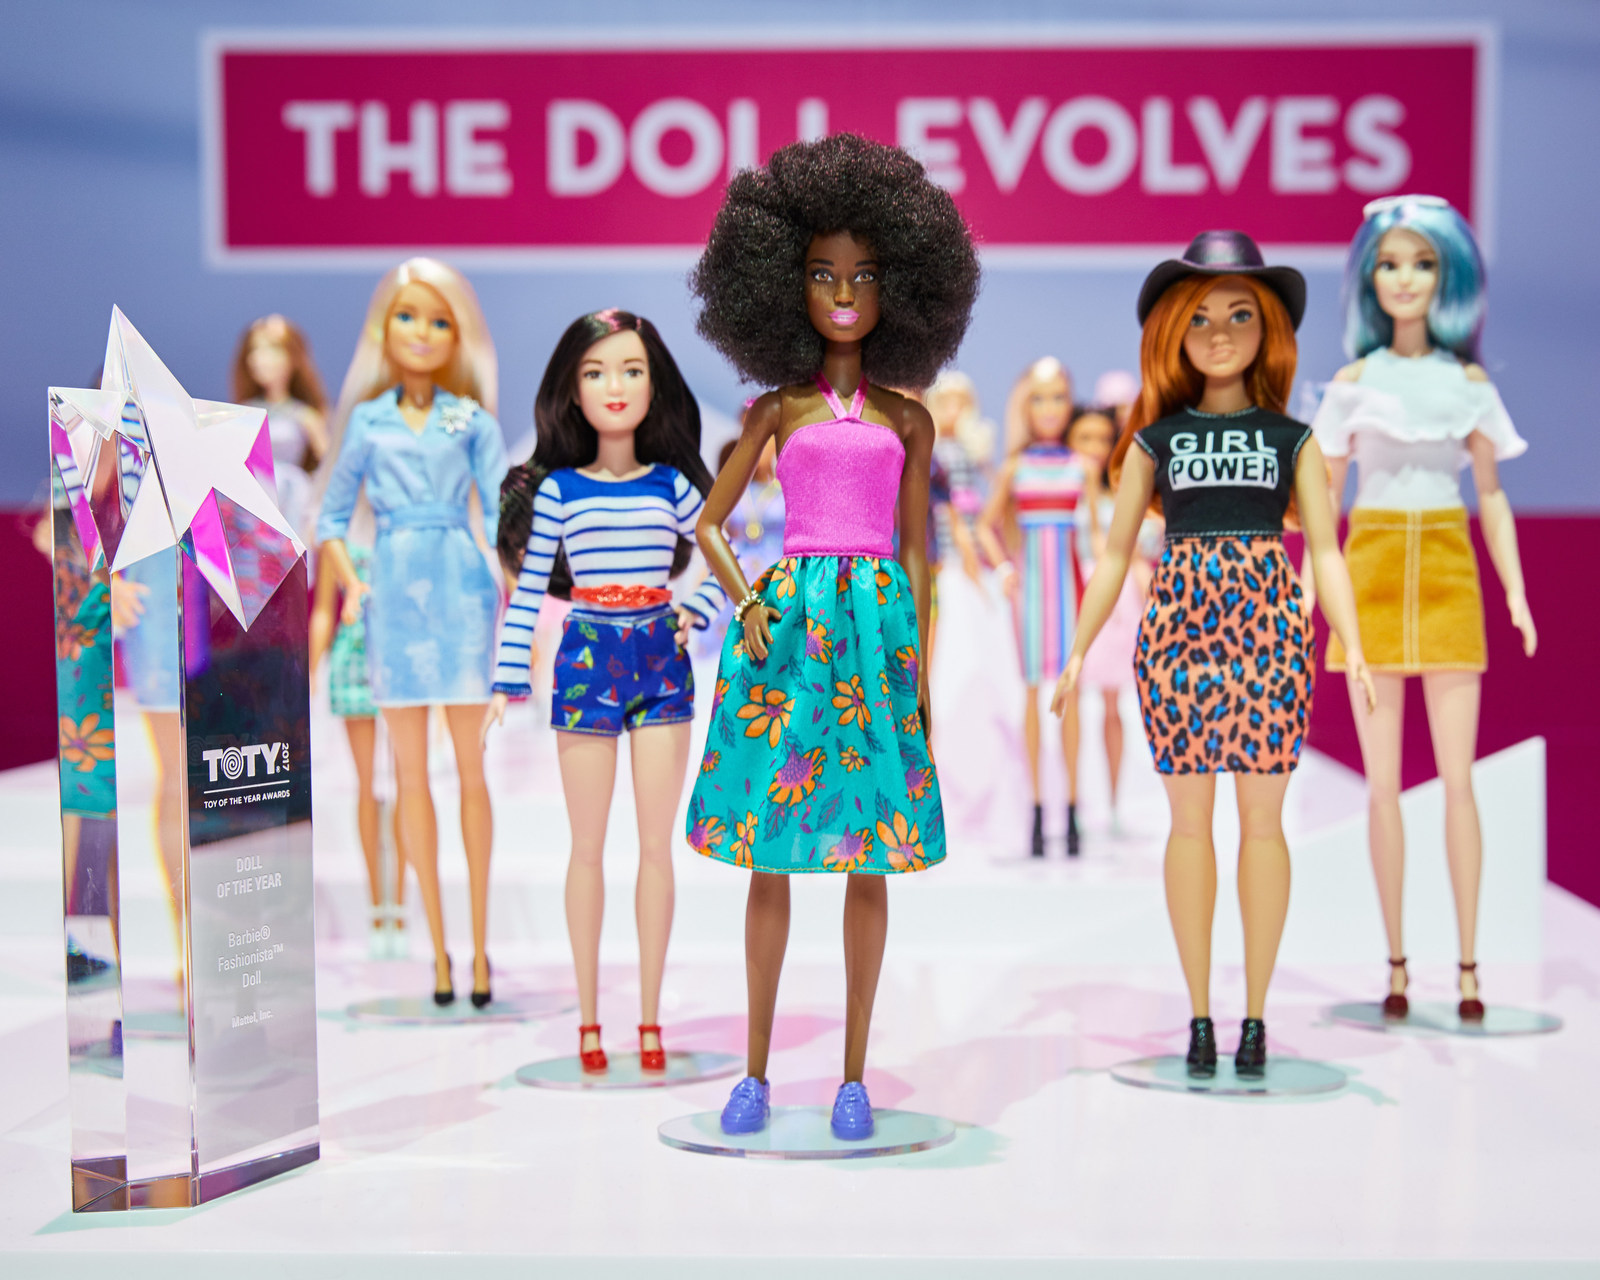 """barbie dating website In the late 1990s, computer technology boomed, and in 1996, mattel launched wwwbarbiecom, the official barbie website in 1998, """"my design"""" was introduced on the site, allowing girls and."""